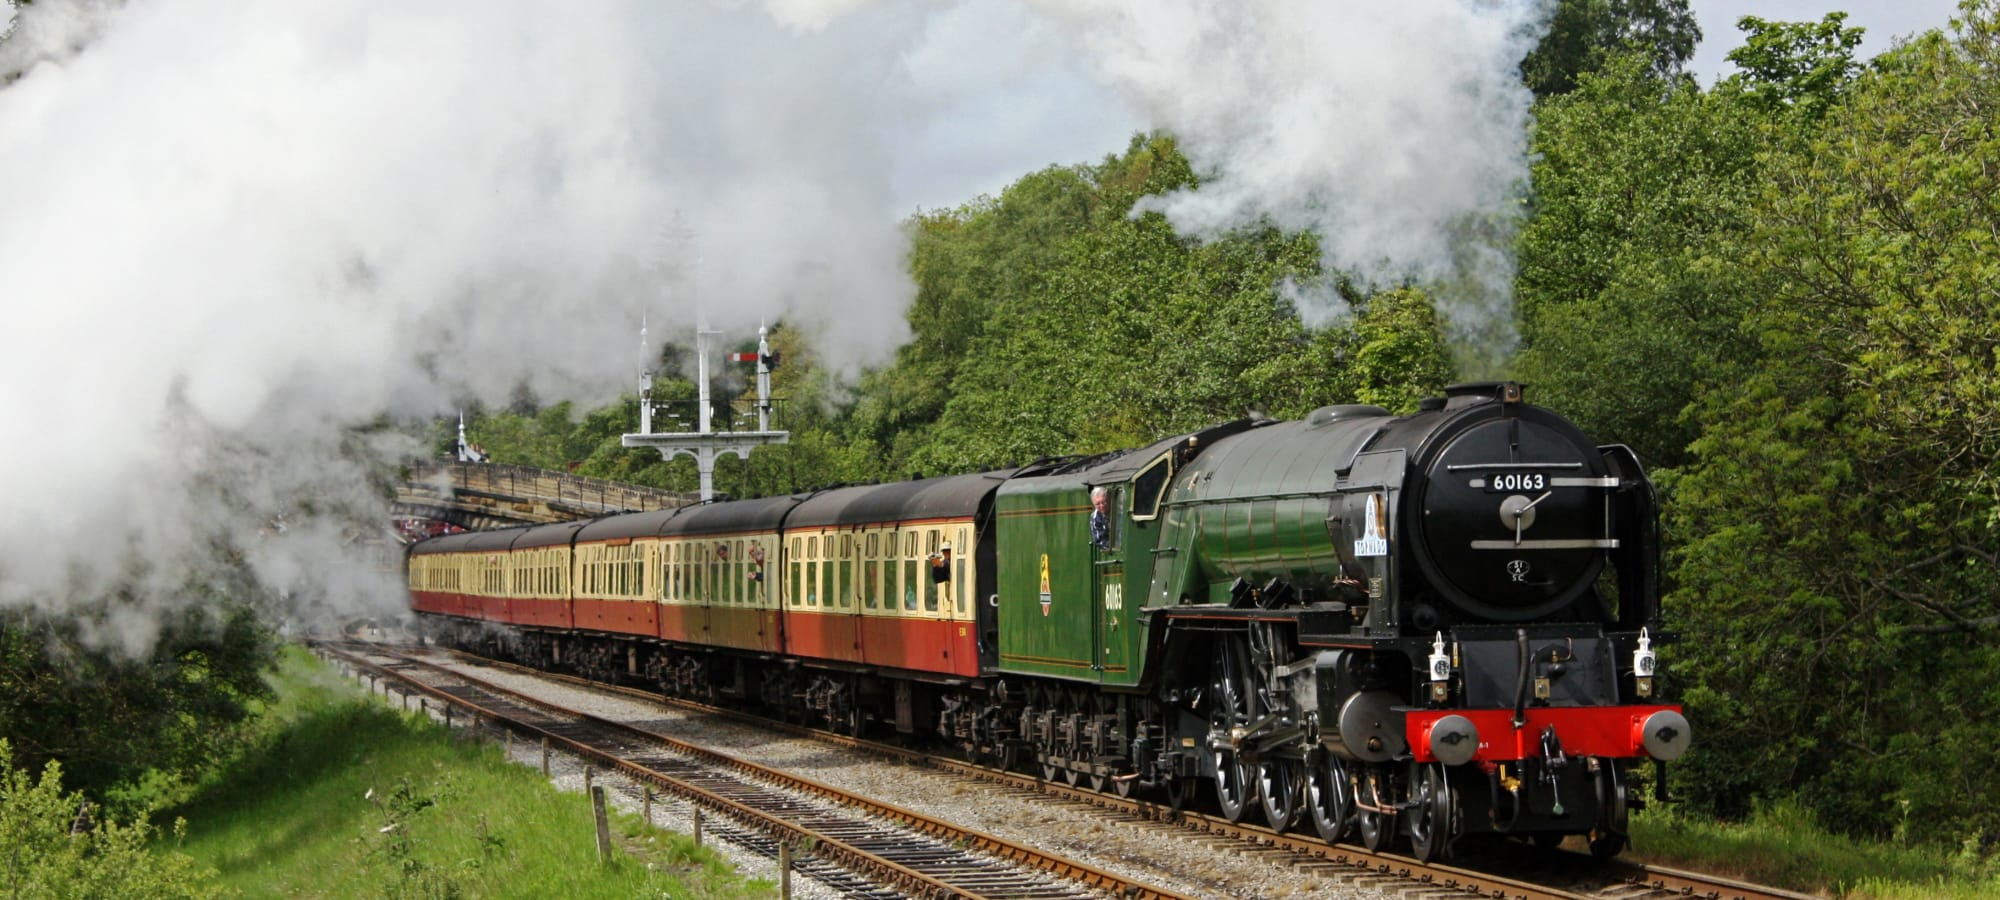 The terrific Tornado set to steam in to the North Yorkshire Moors Railway